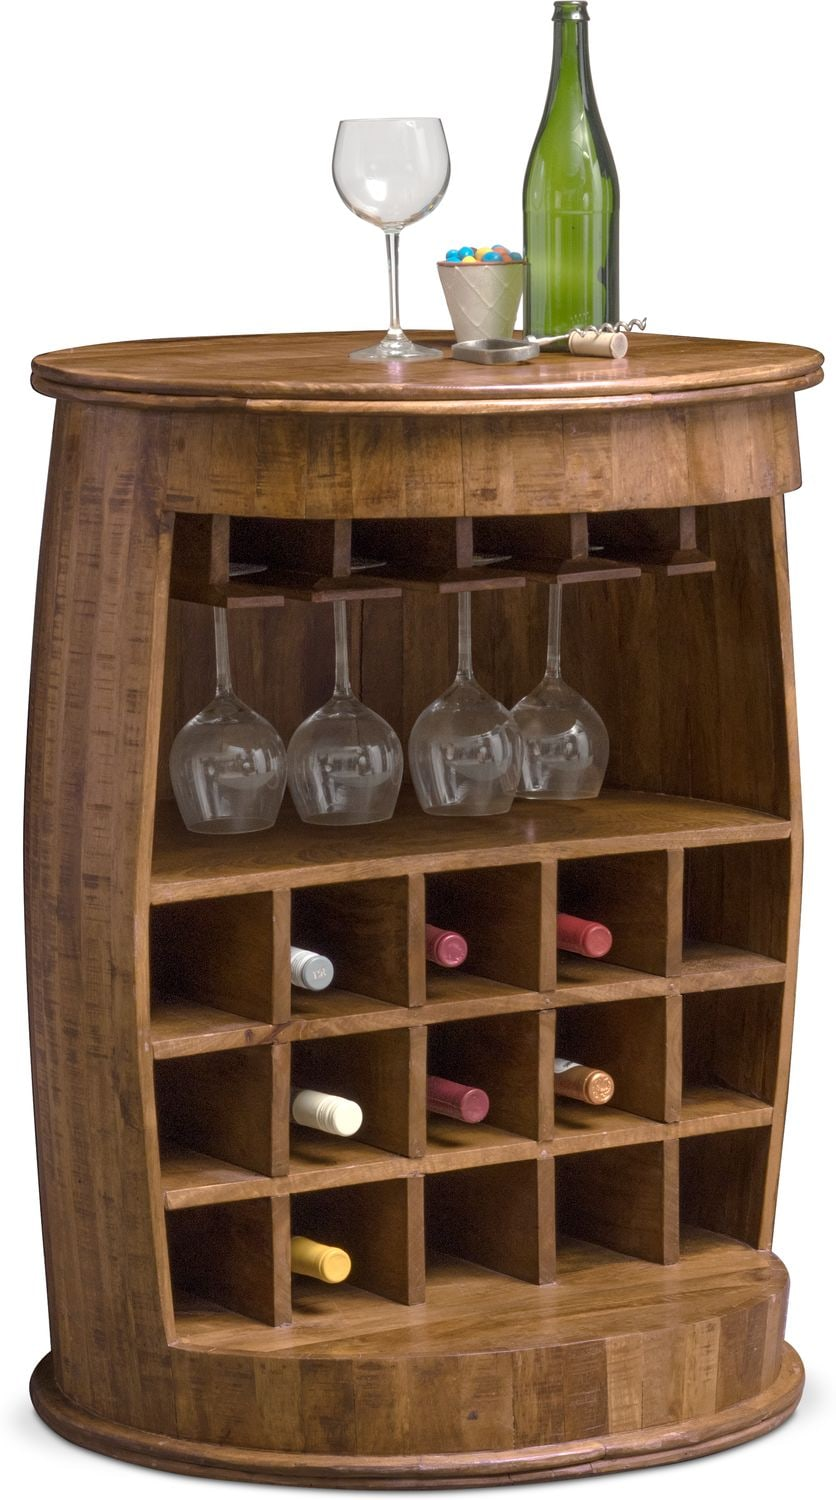 Barnstone Wine Barrel American Signature Furniture